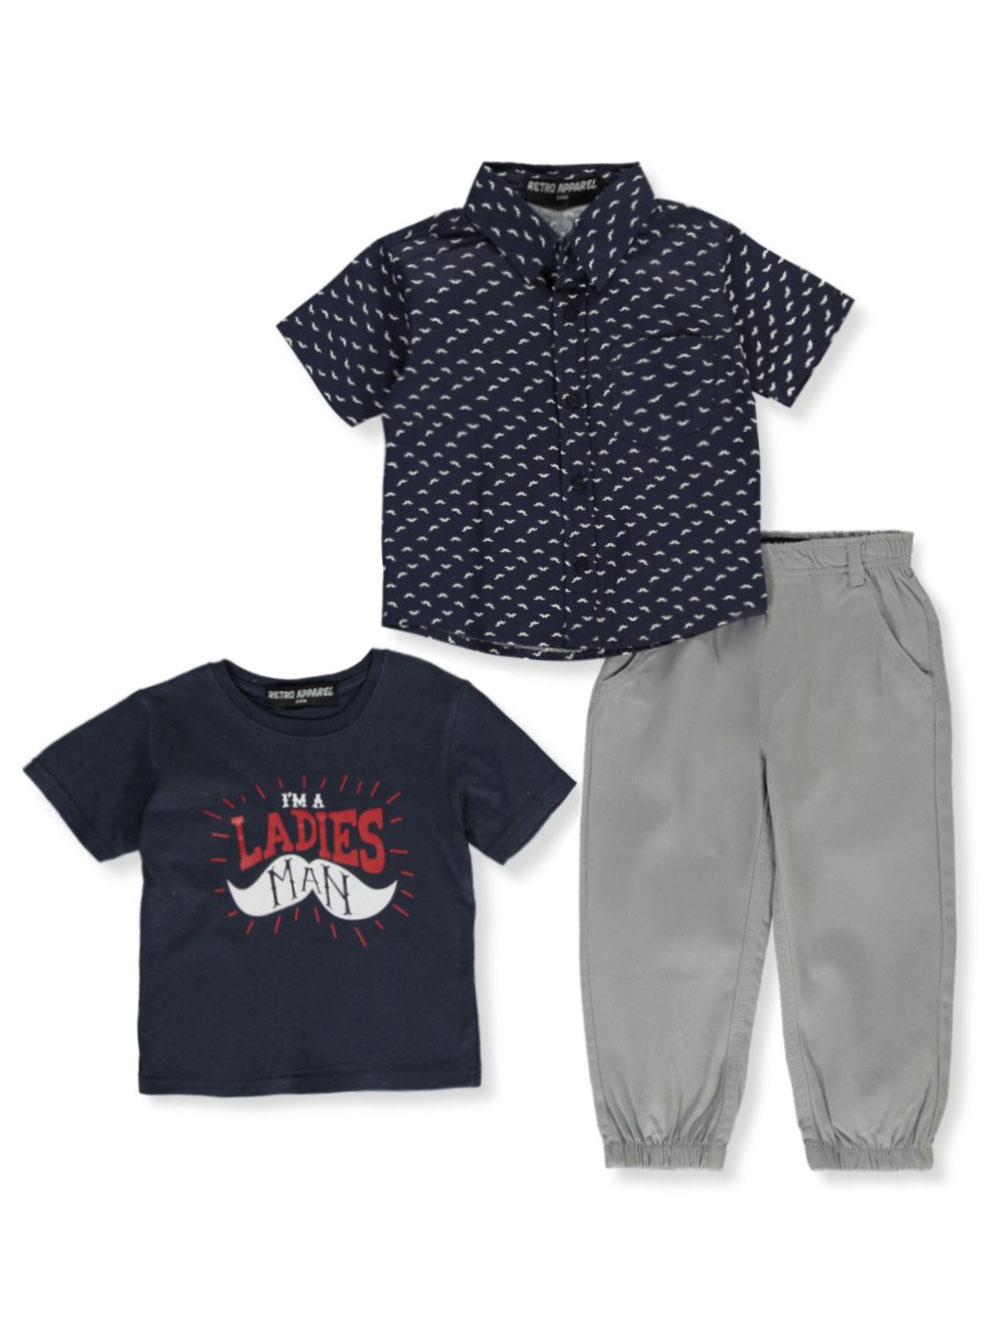 Boys White and Gray Pant Sets